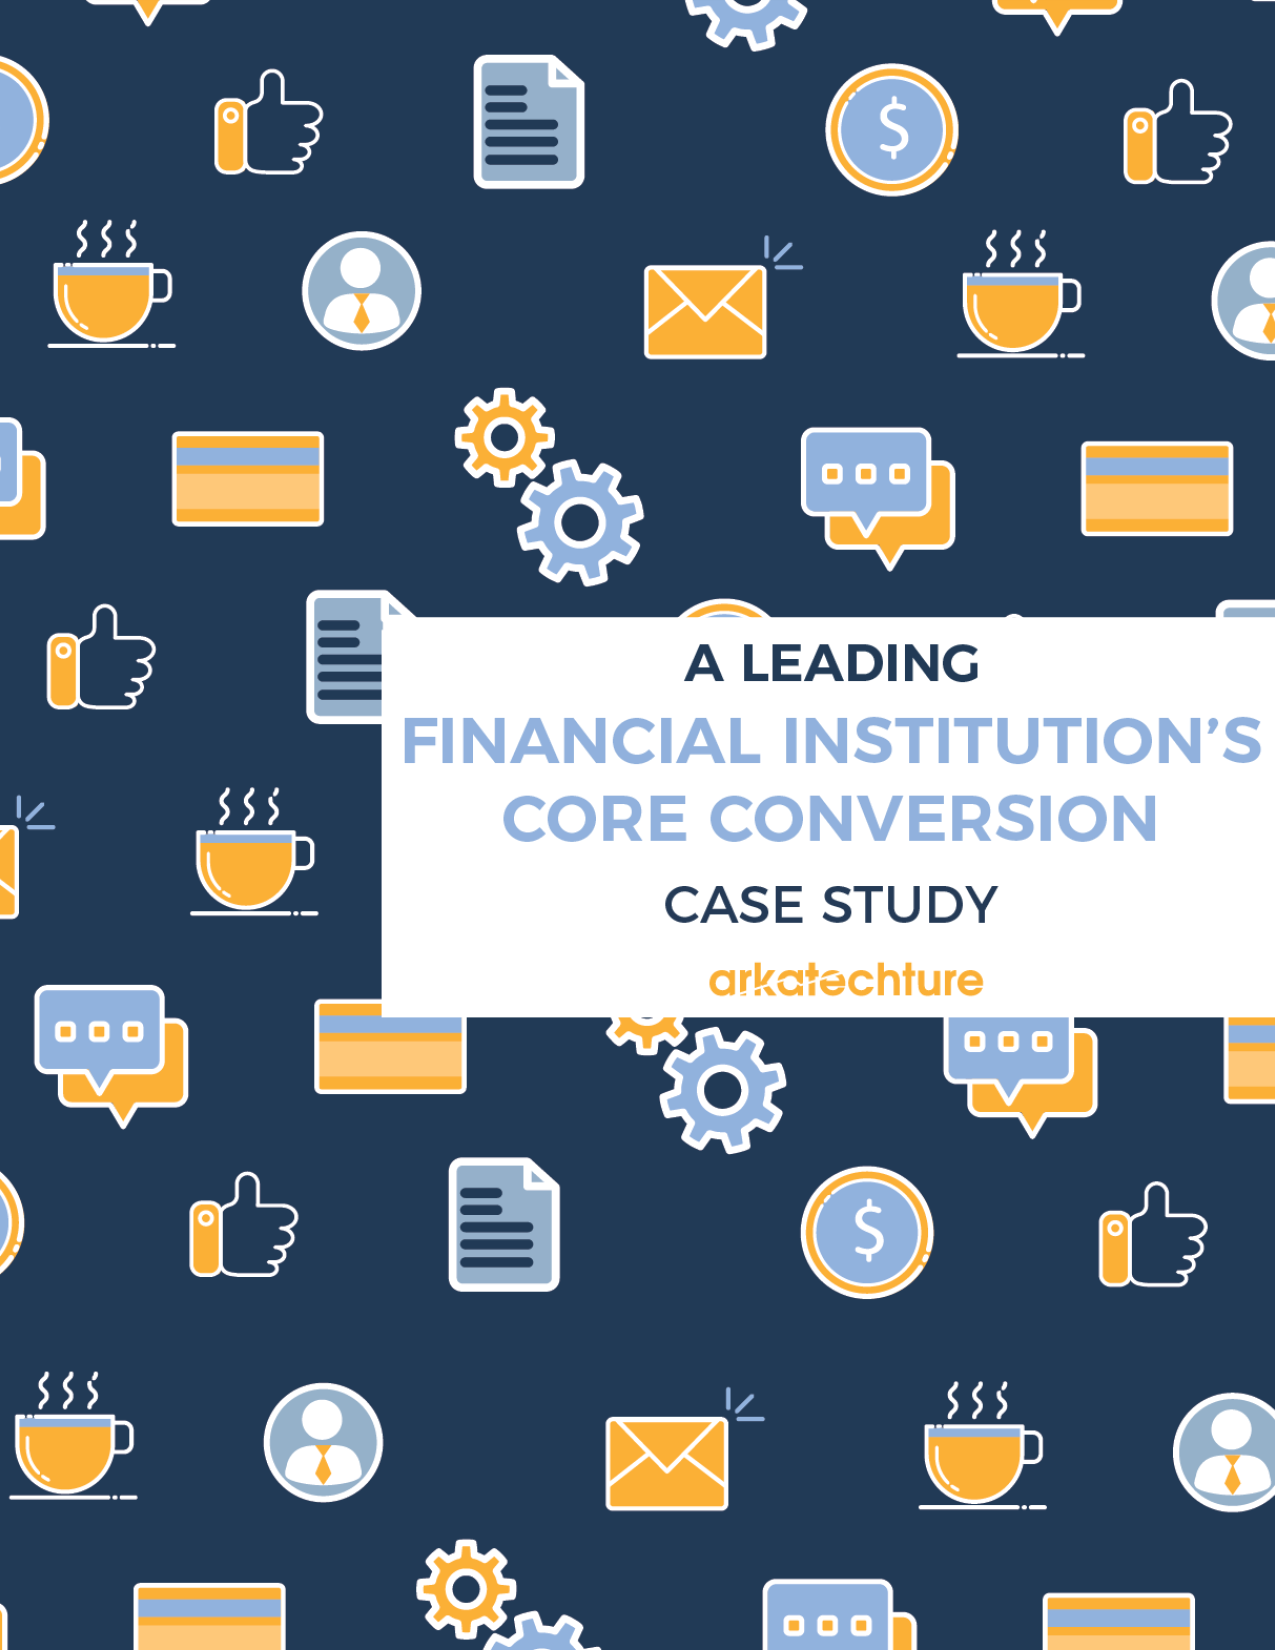 a leading financial institution core conversion case study